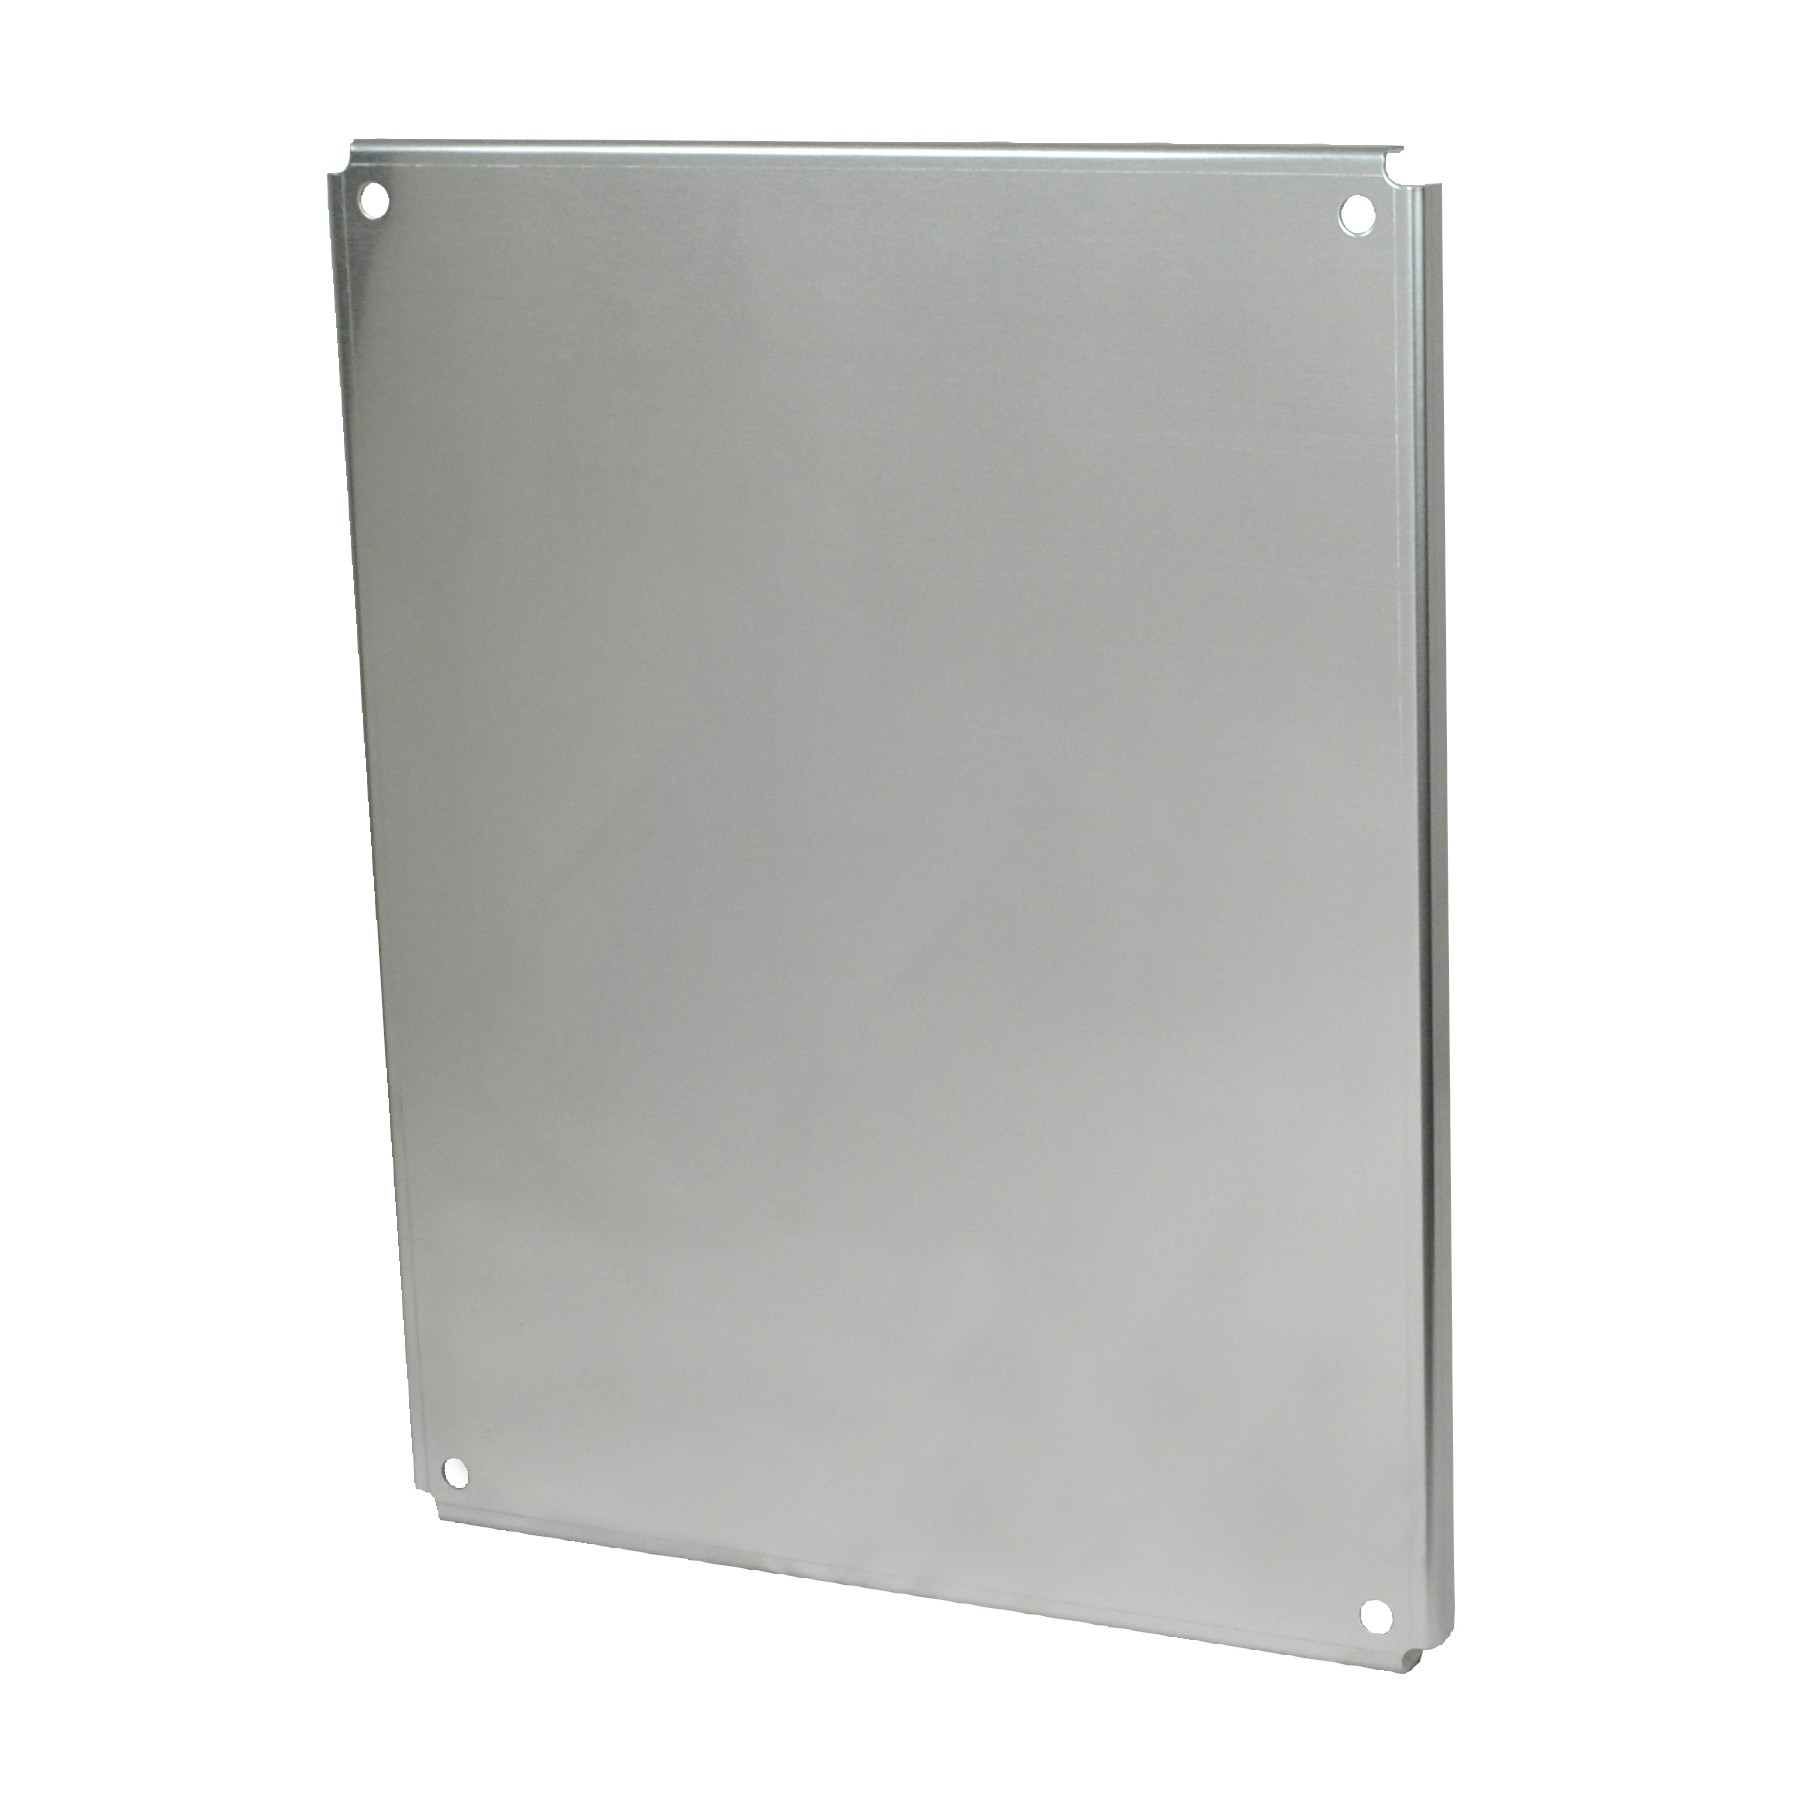 PA3024 - Aluminum Enclosure Back Panel Kit